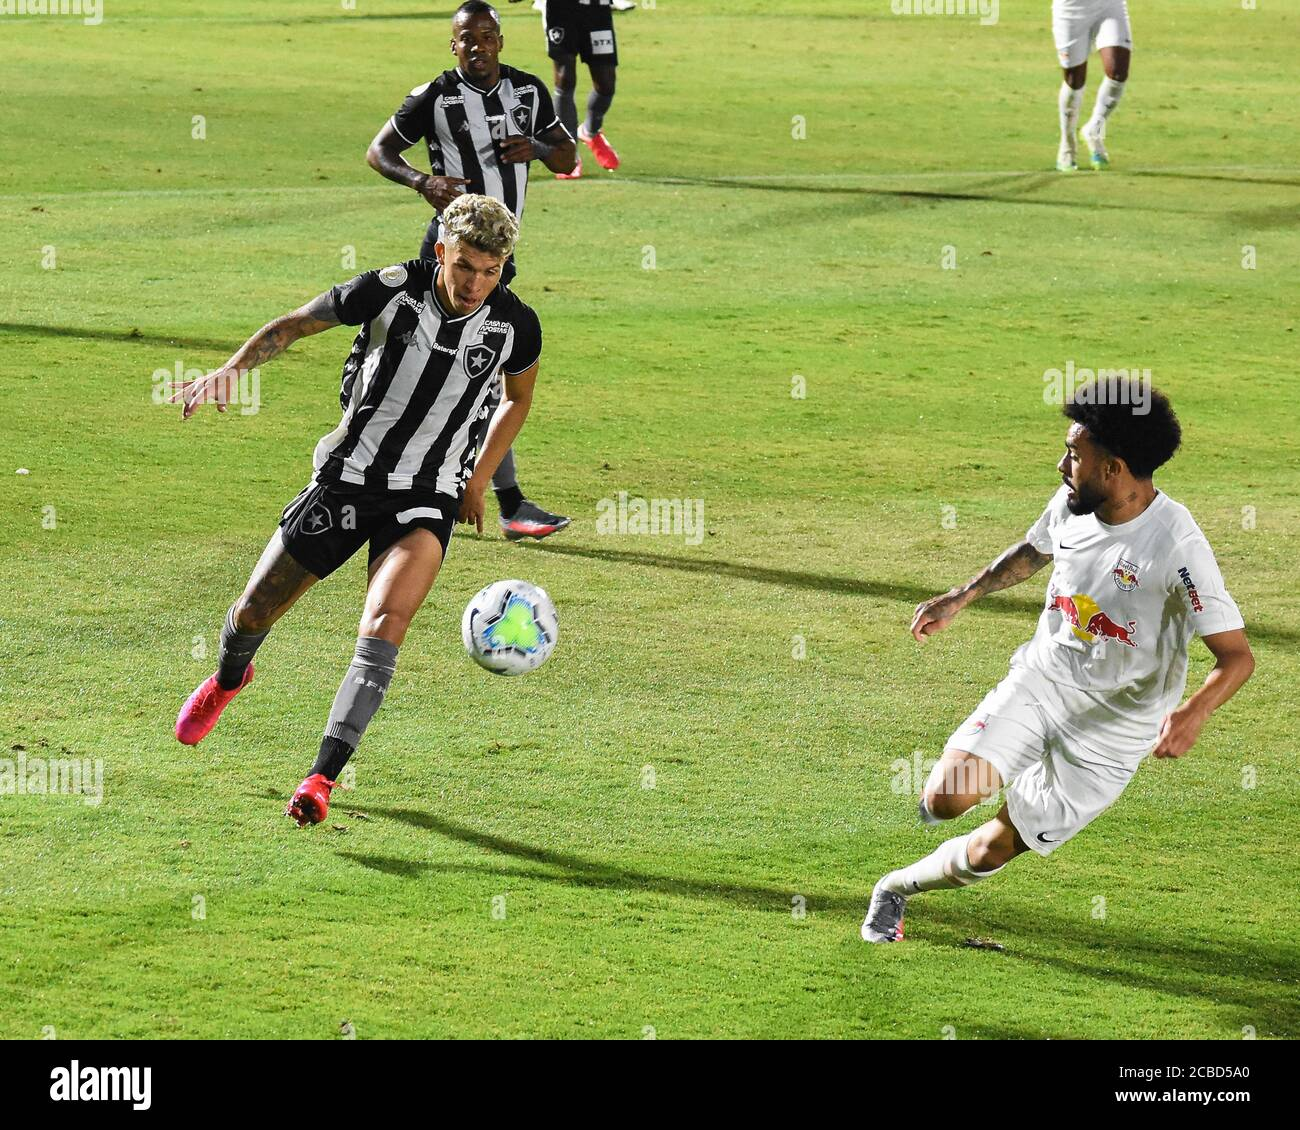 Page 4 Of Bragantino High Resolution Stock Photography And Images Alamy